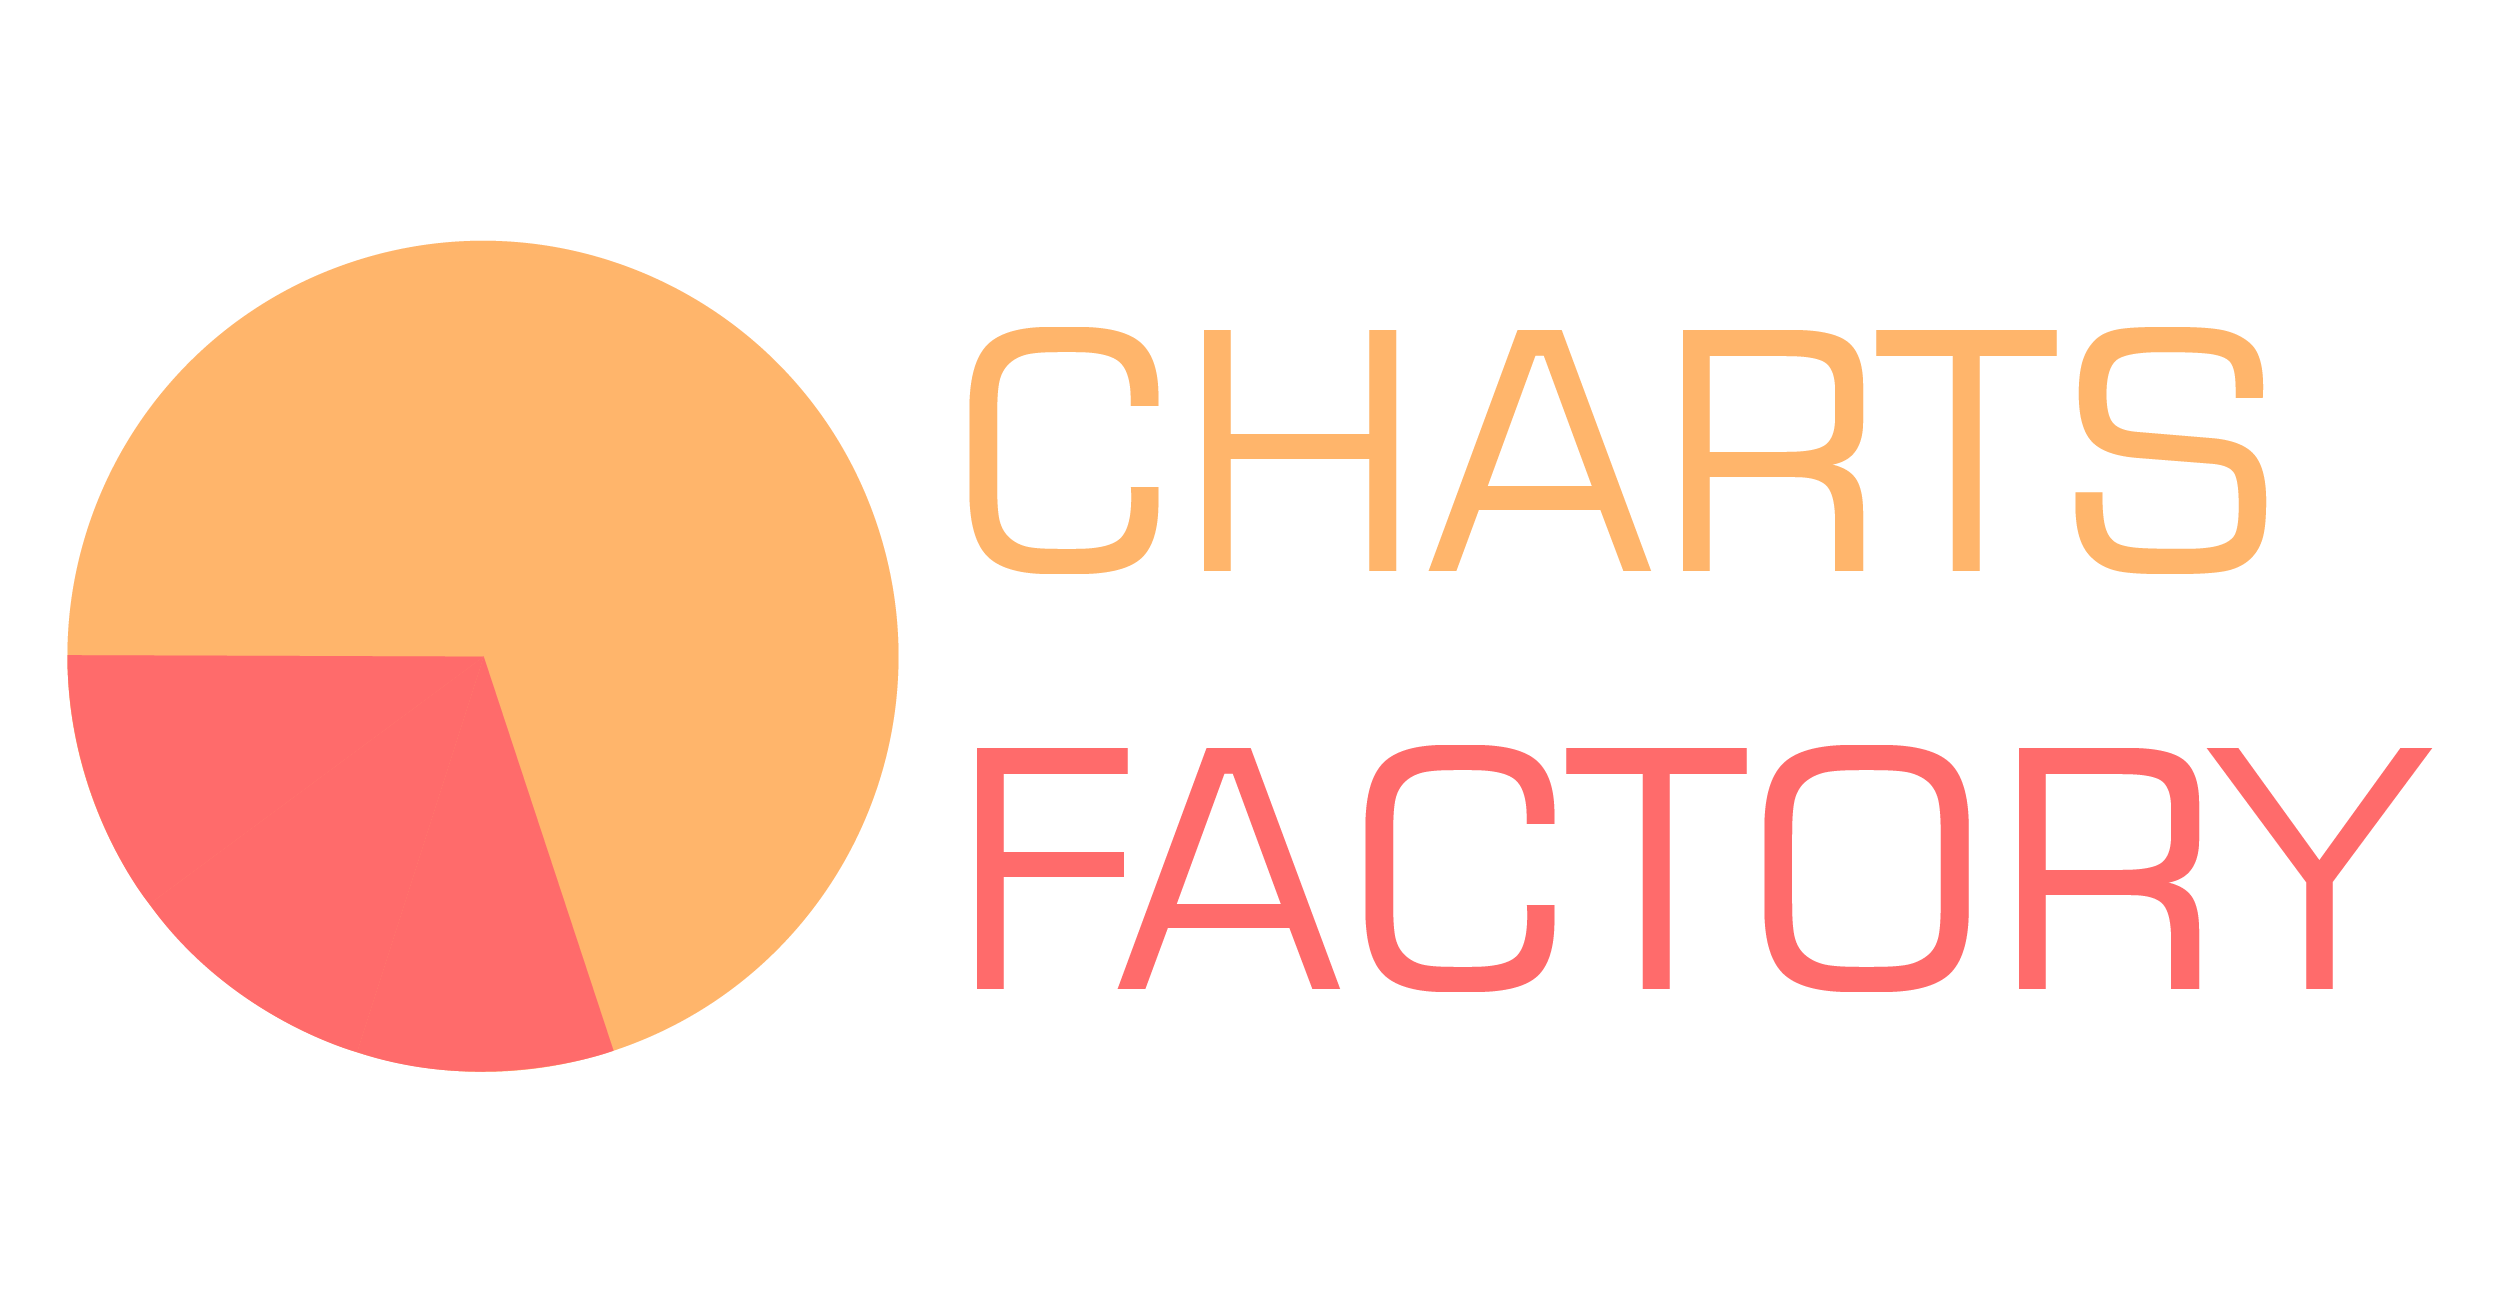 Create Charts Easily and Super Fast